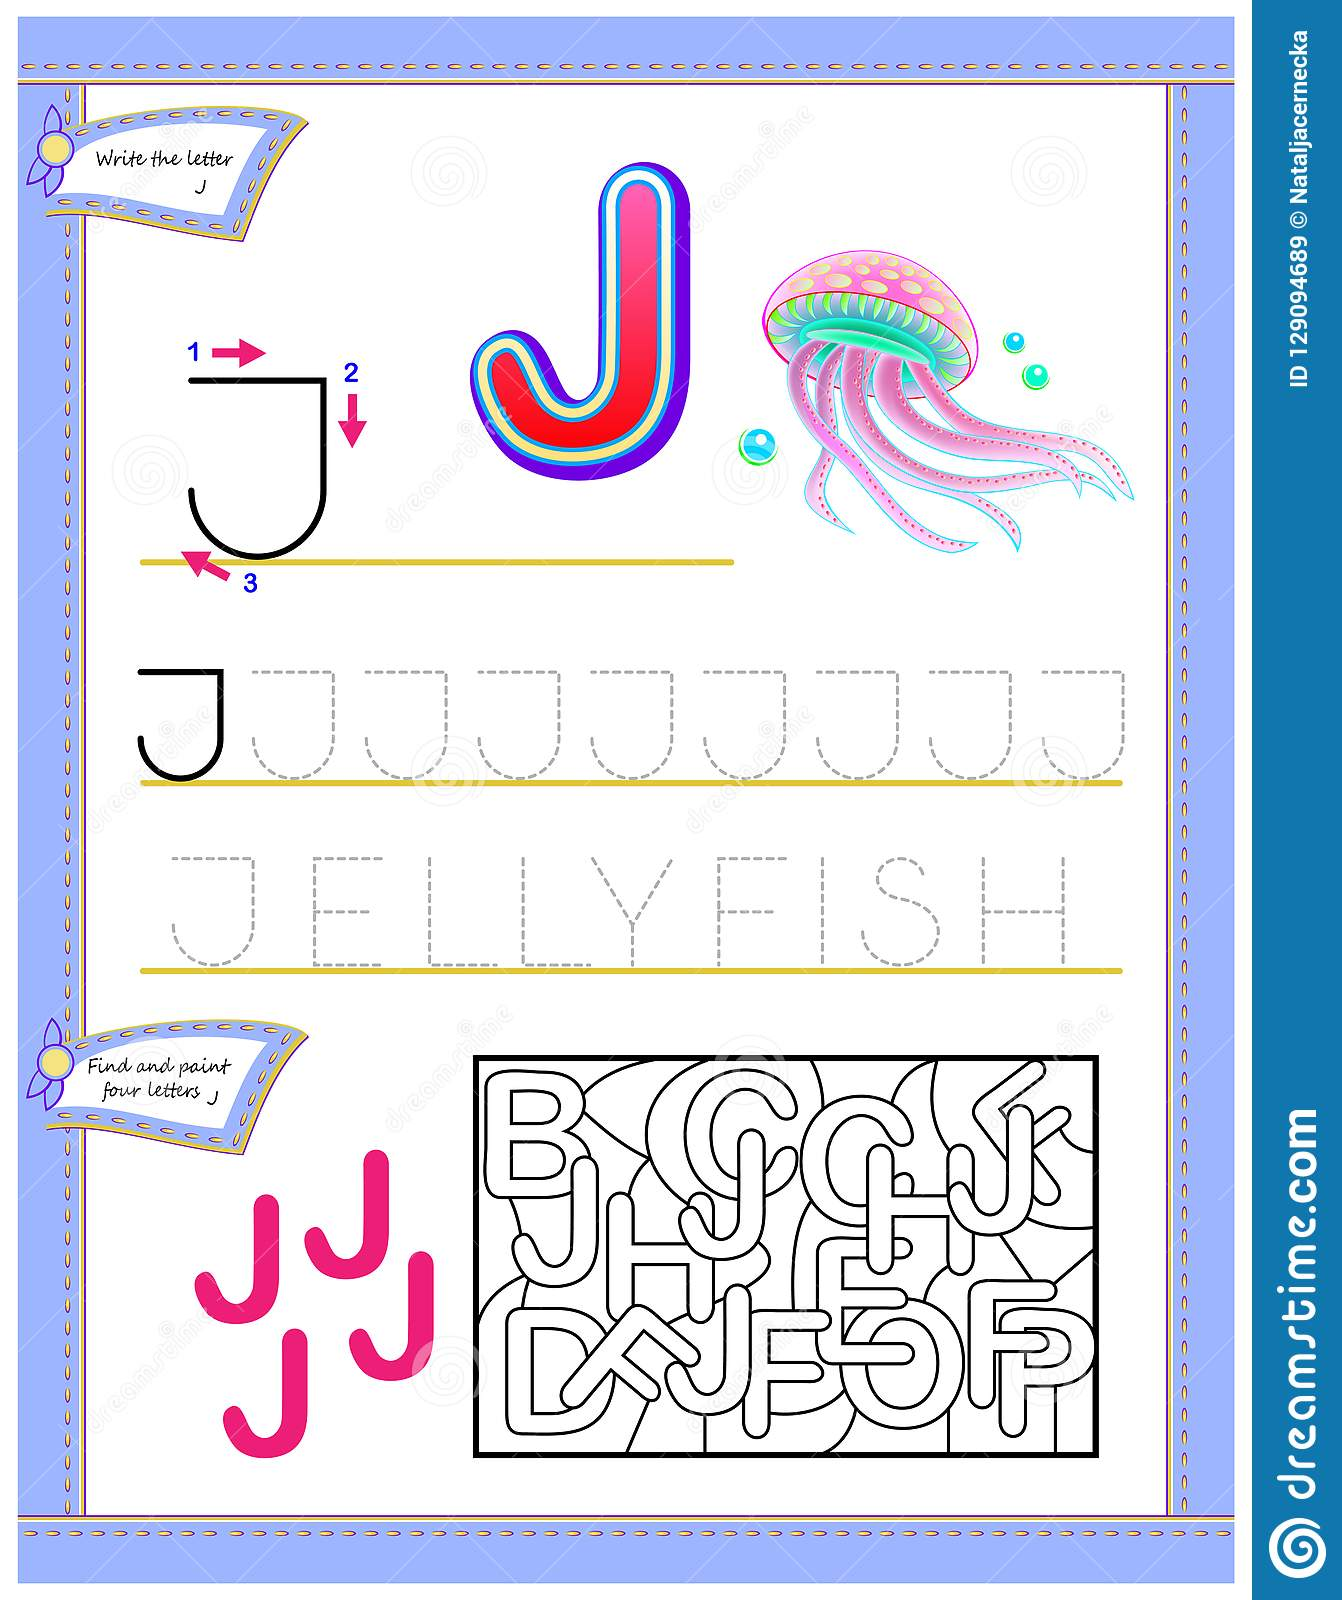 Worksheet For Kids With Letter J For Study English Alphabet ...